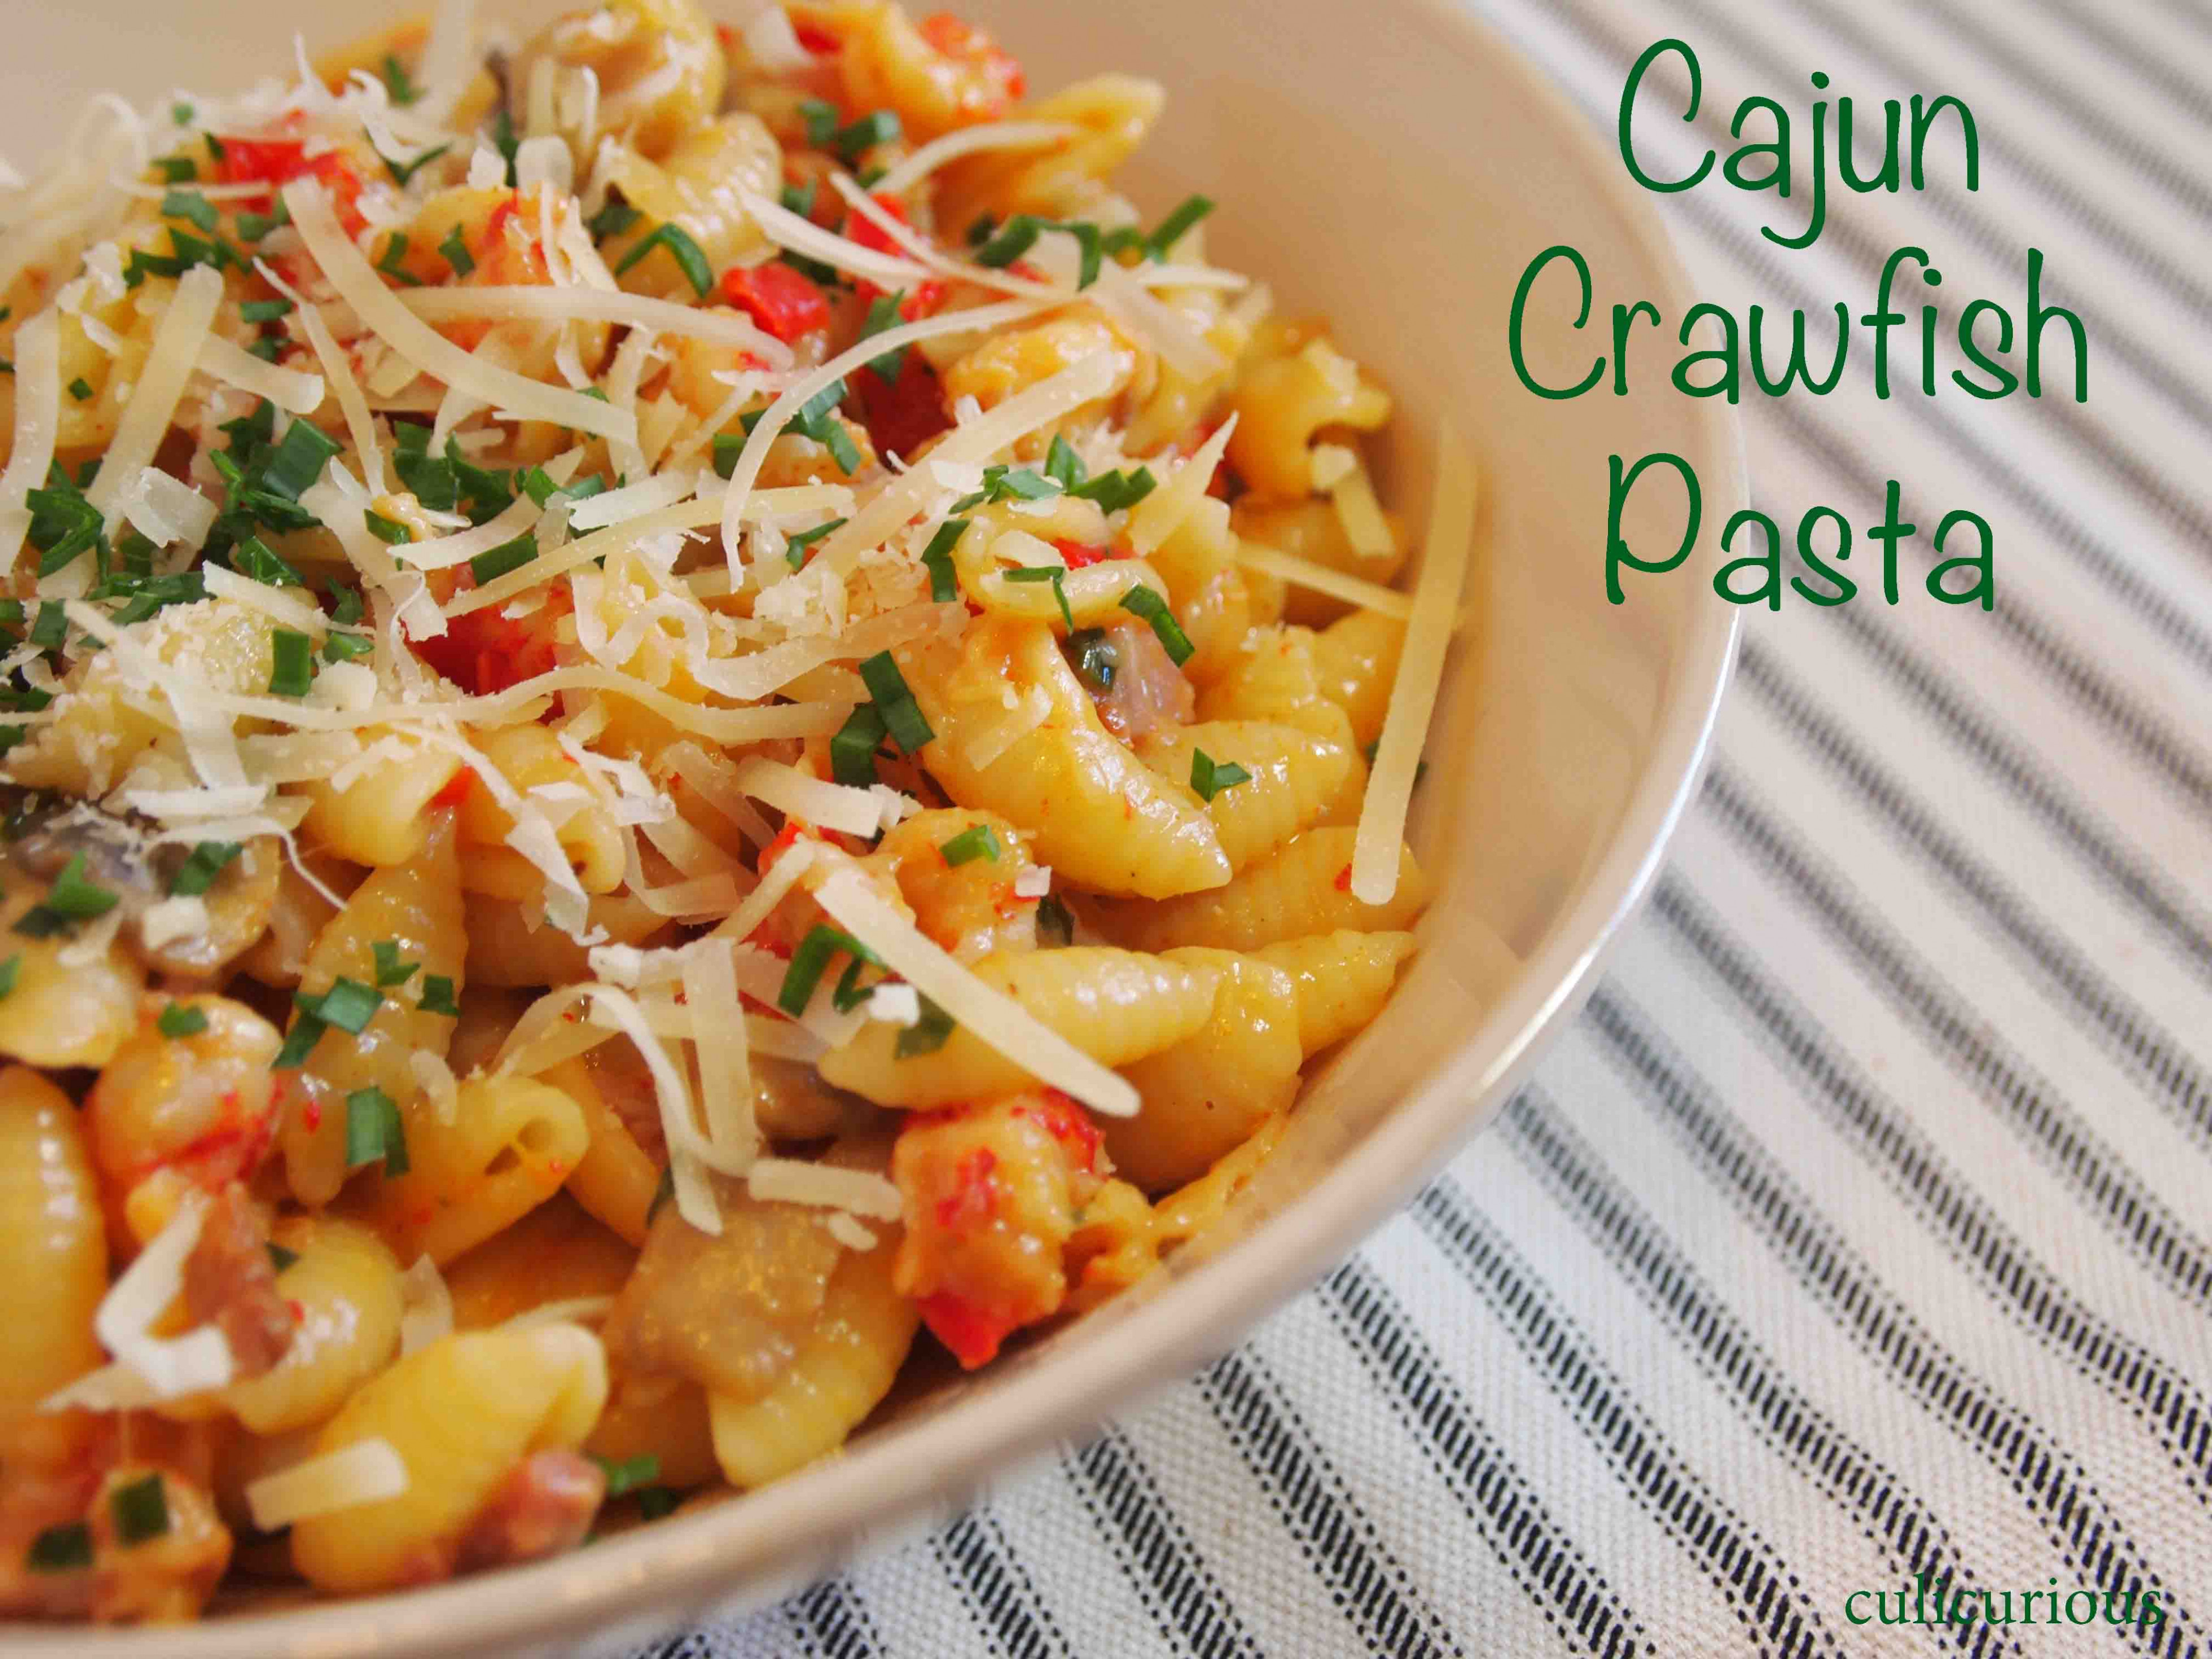 Cajun Crawfish Pasta Recipe | Culicurious